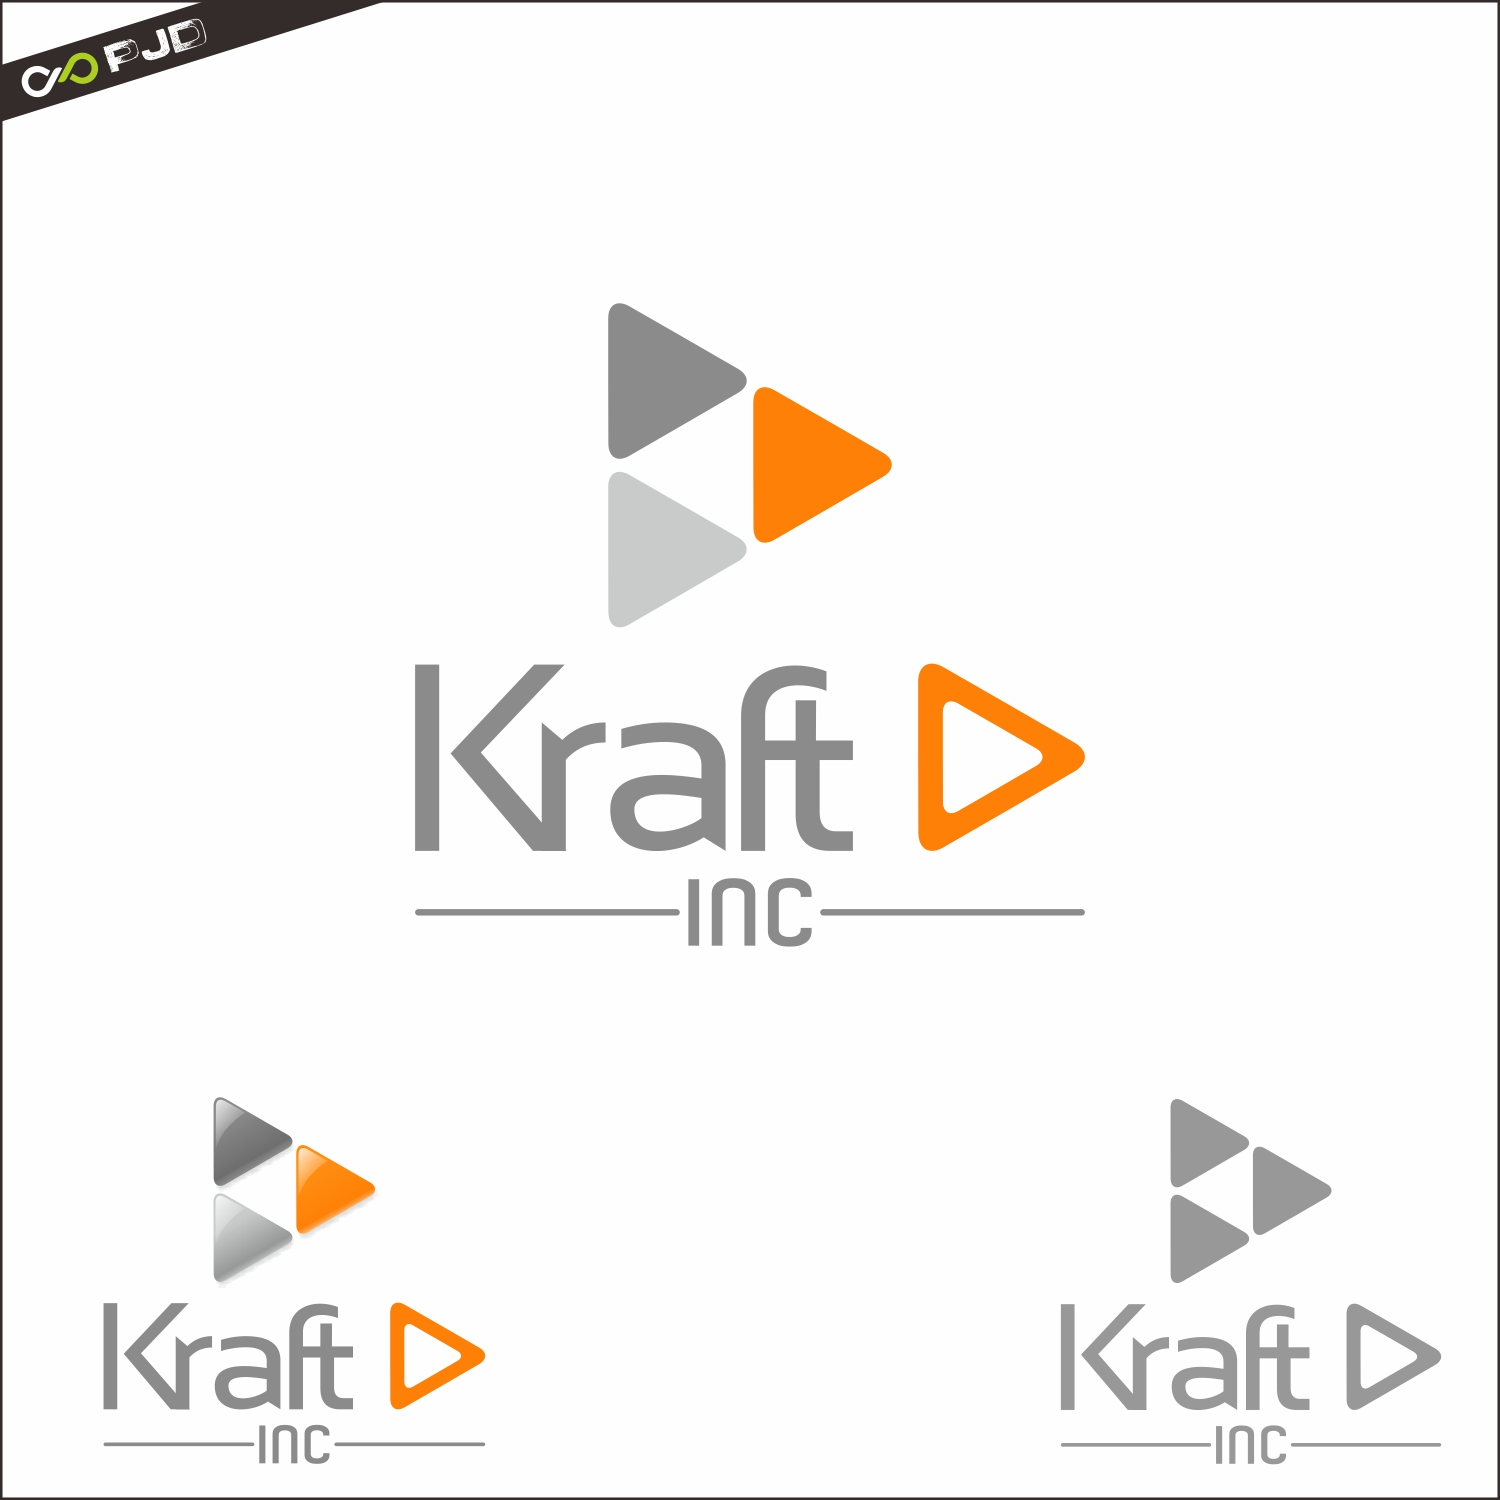 Logo Design by PJD - Entry No. 309 in the Logo Design Contest Unique Logo Design Wanted for Kraft D Inc.